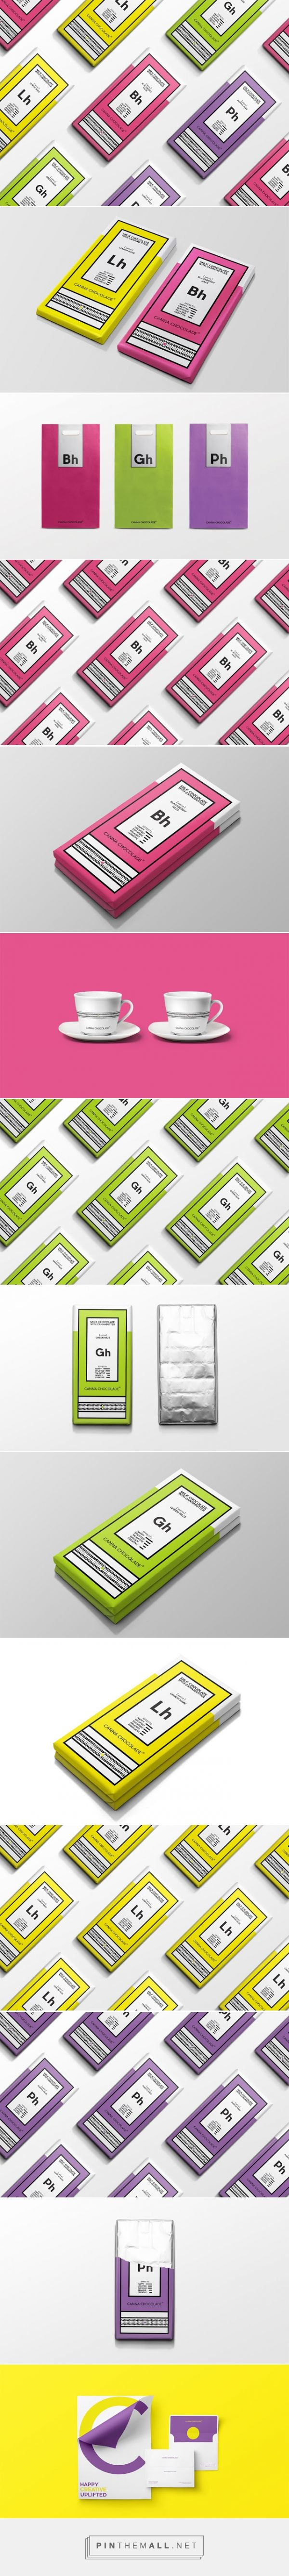 Canna Chocolade cannabis chocolate packaging concept designed by Corn Studio​ - http://www.packagingoftheworld.com/2015/10/canna-chocolade-concept.html